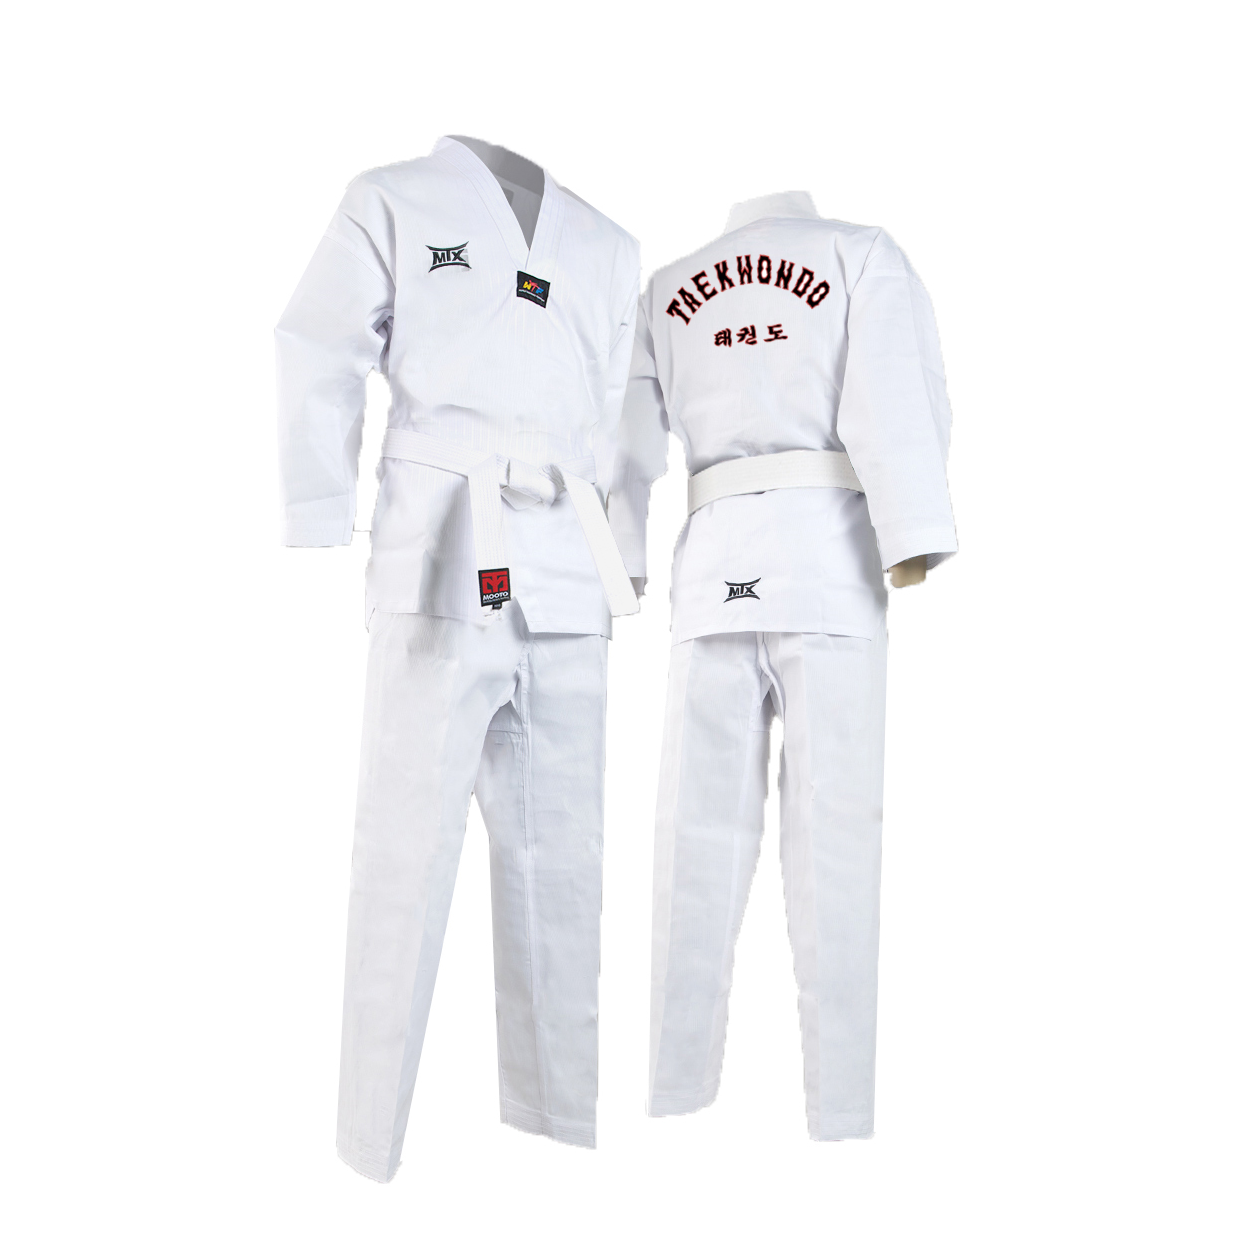 MTX_Uniform_white_collar_embroidery__42610_1477865286_1280_1280